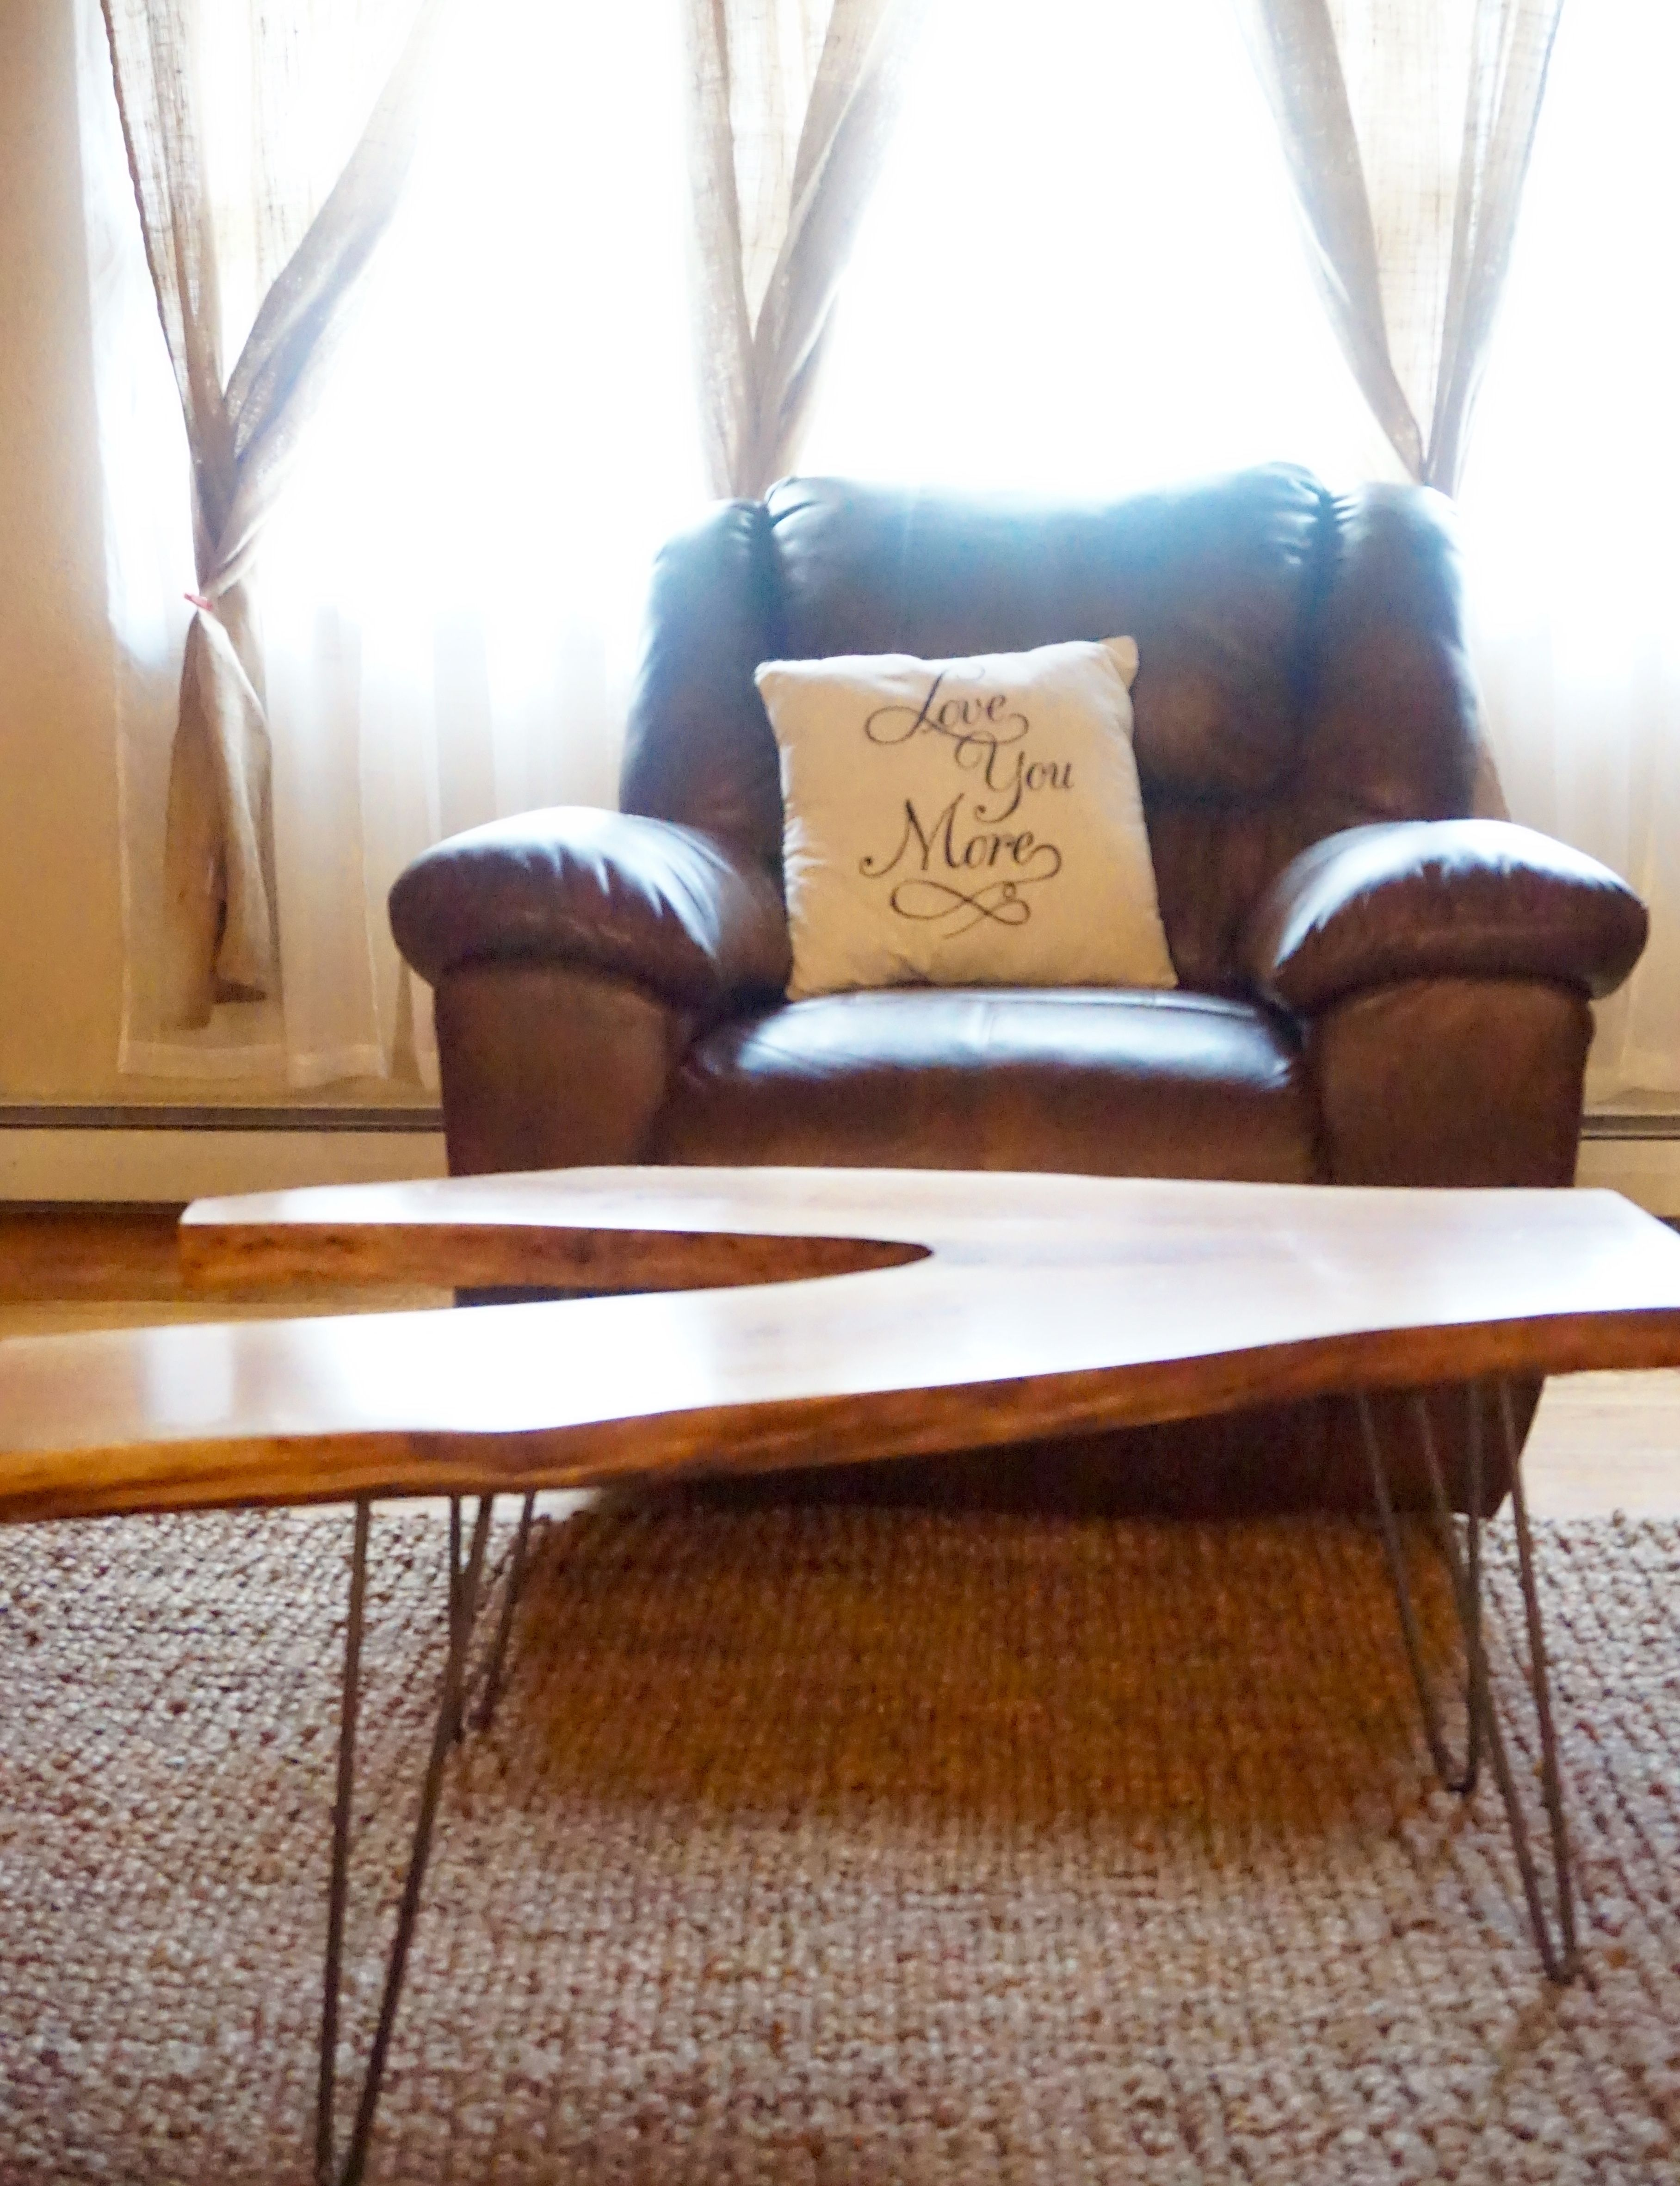 Kiln dried hardwood slabs and furniture from cds hardwoods on etsy